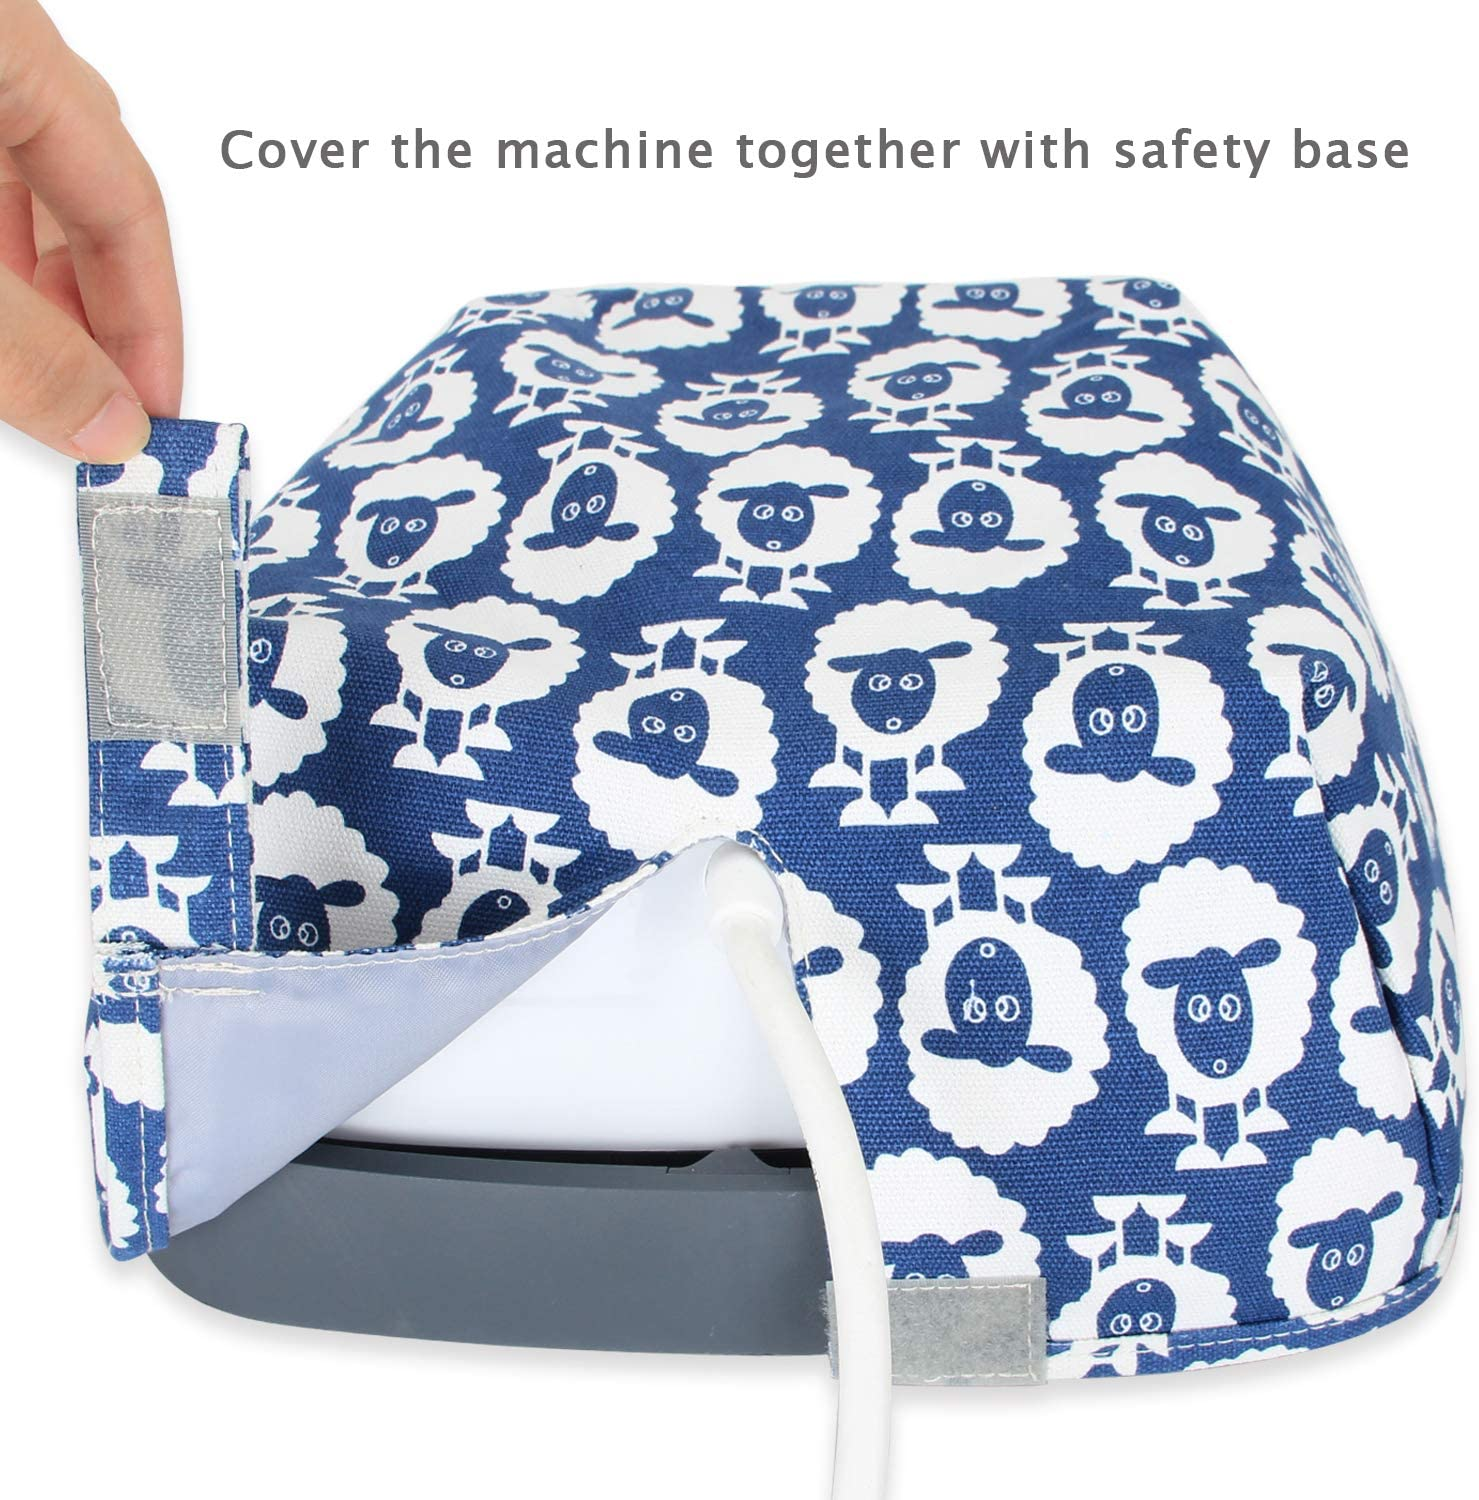 Luxja Dust Cover Compatible with Cricut Easy Press Sheep 9 Inches x 9 Inches